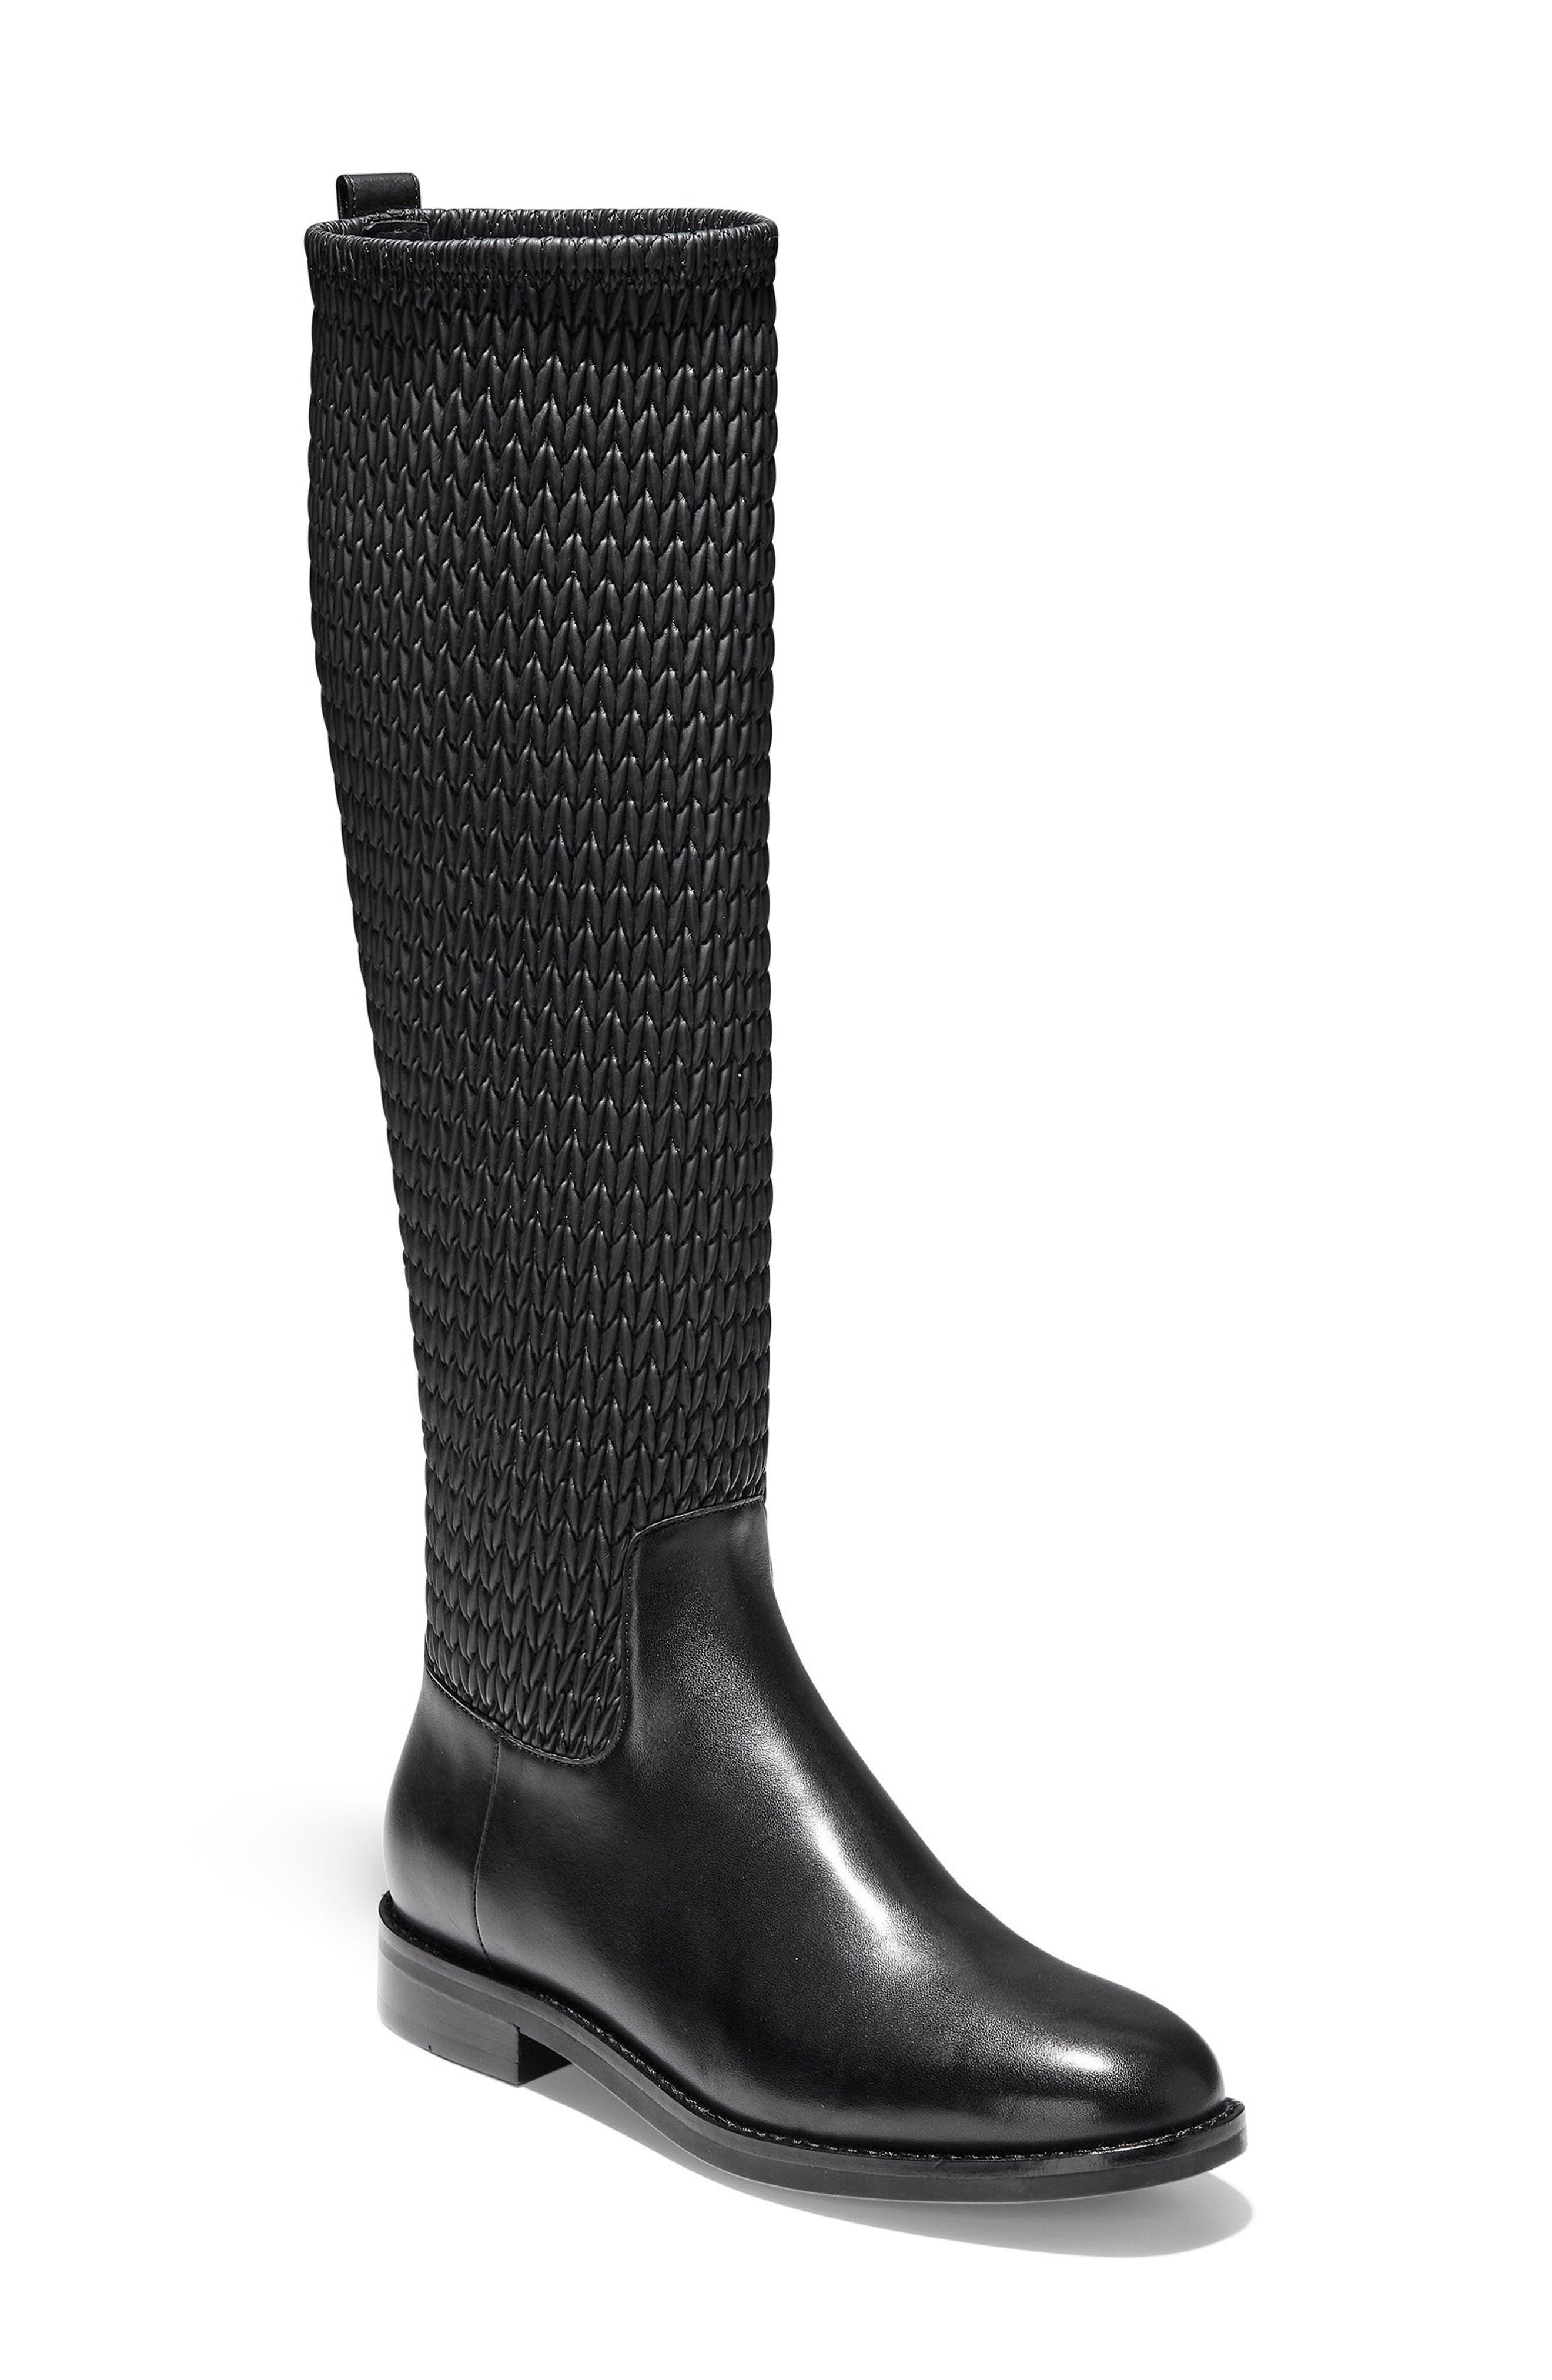 COLE HAAN Lexi Grand Stretch Leather Riding Boots in Black Leather